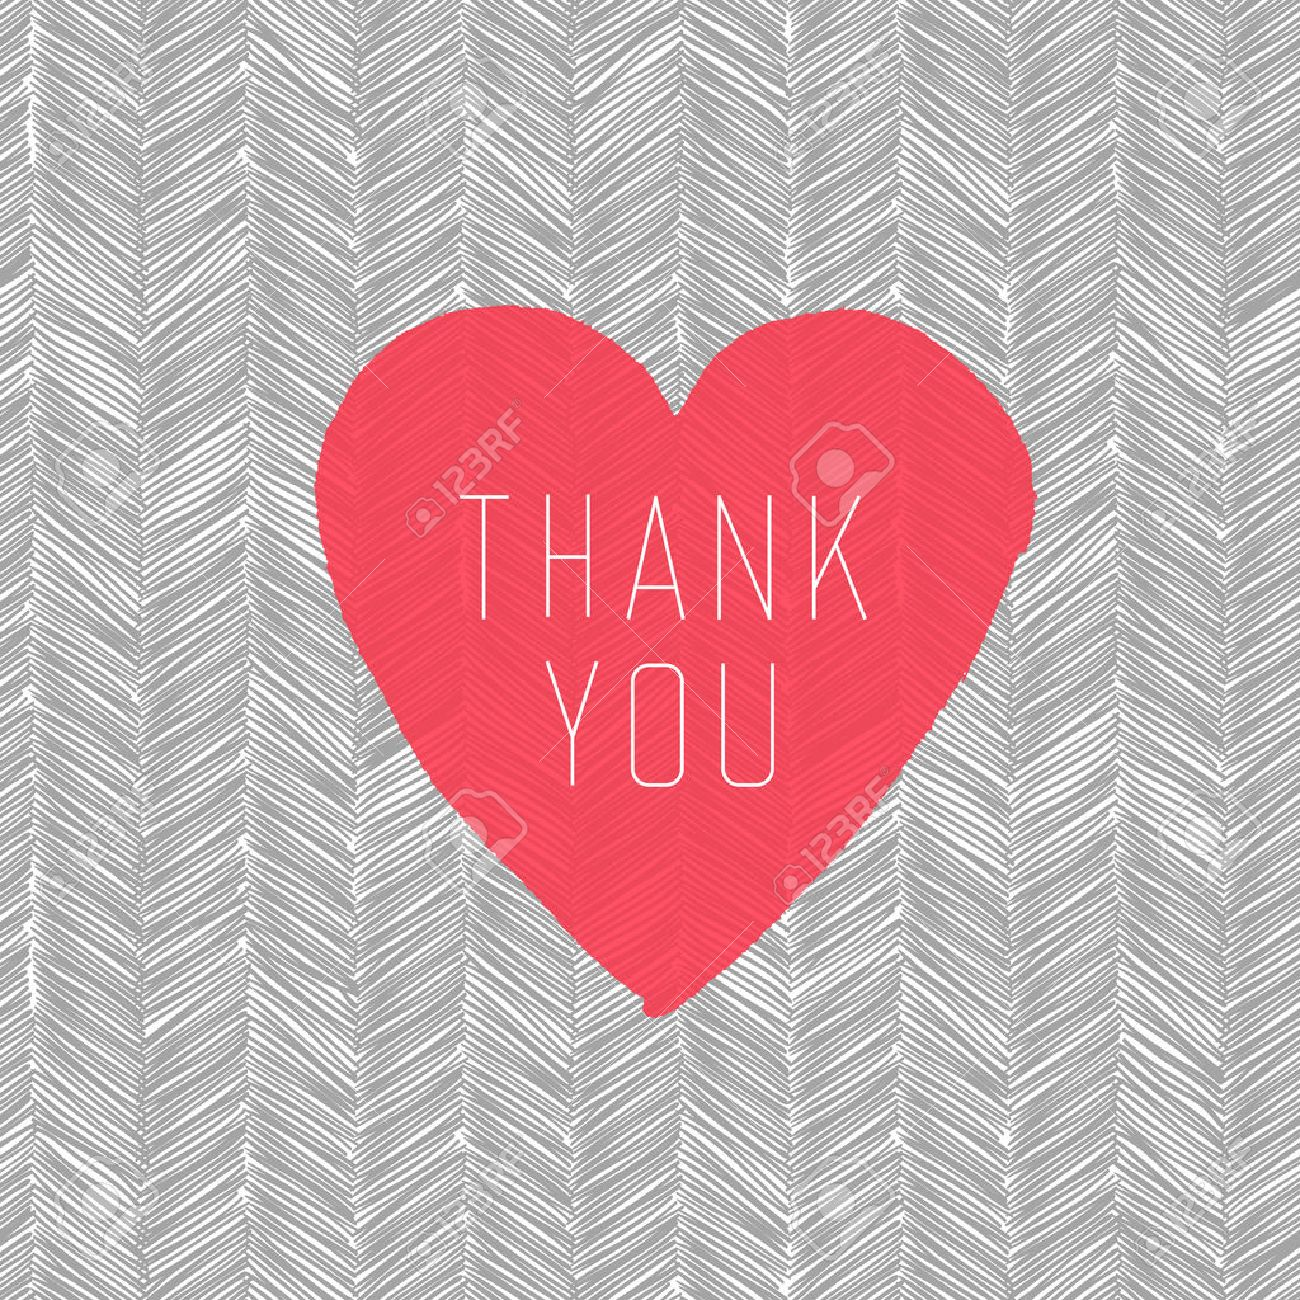 ""\\\\\\\\\\\\\\\\""""Thank You\\\\\\\\\\\\\\\"""" Card with Heart Symbol on Hand Drawn Pattern - 34372032""1300|1300|?|en|2|92553a28796518f09692b7ea11582aff|False|UNLIKELY|0.2956545650959015